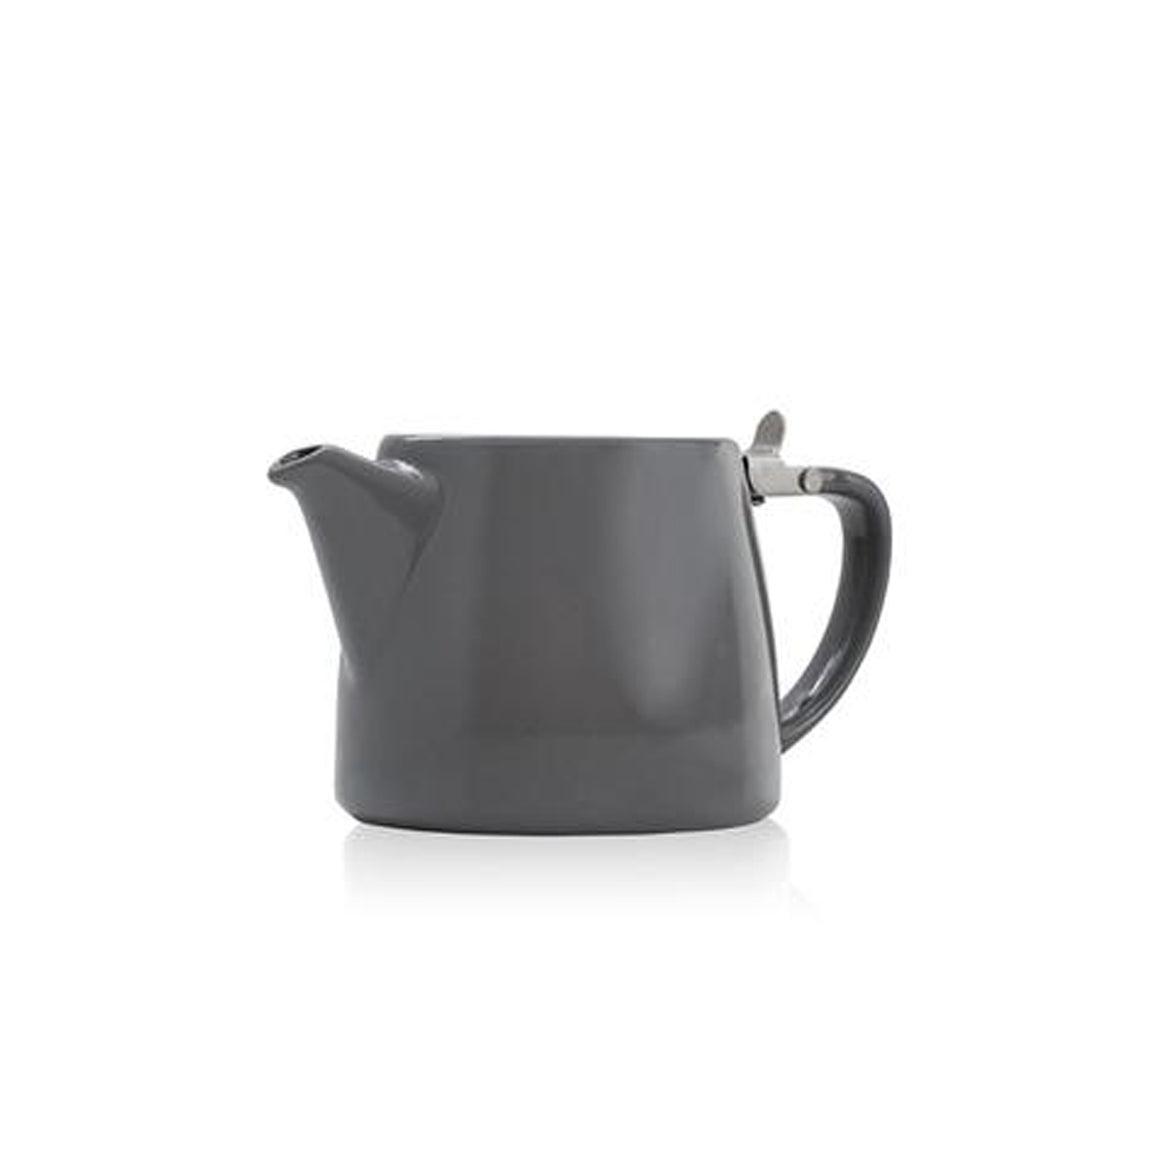 Forlife Grey Stump Teapot 18oz